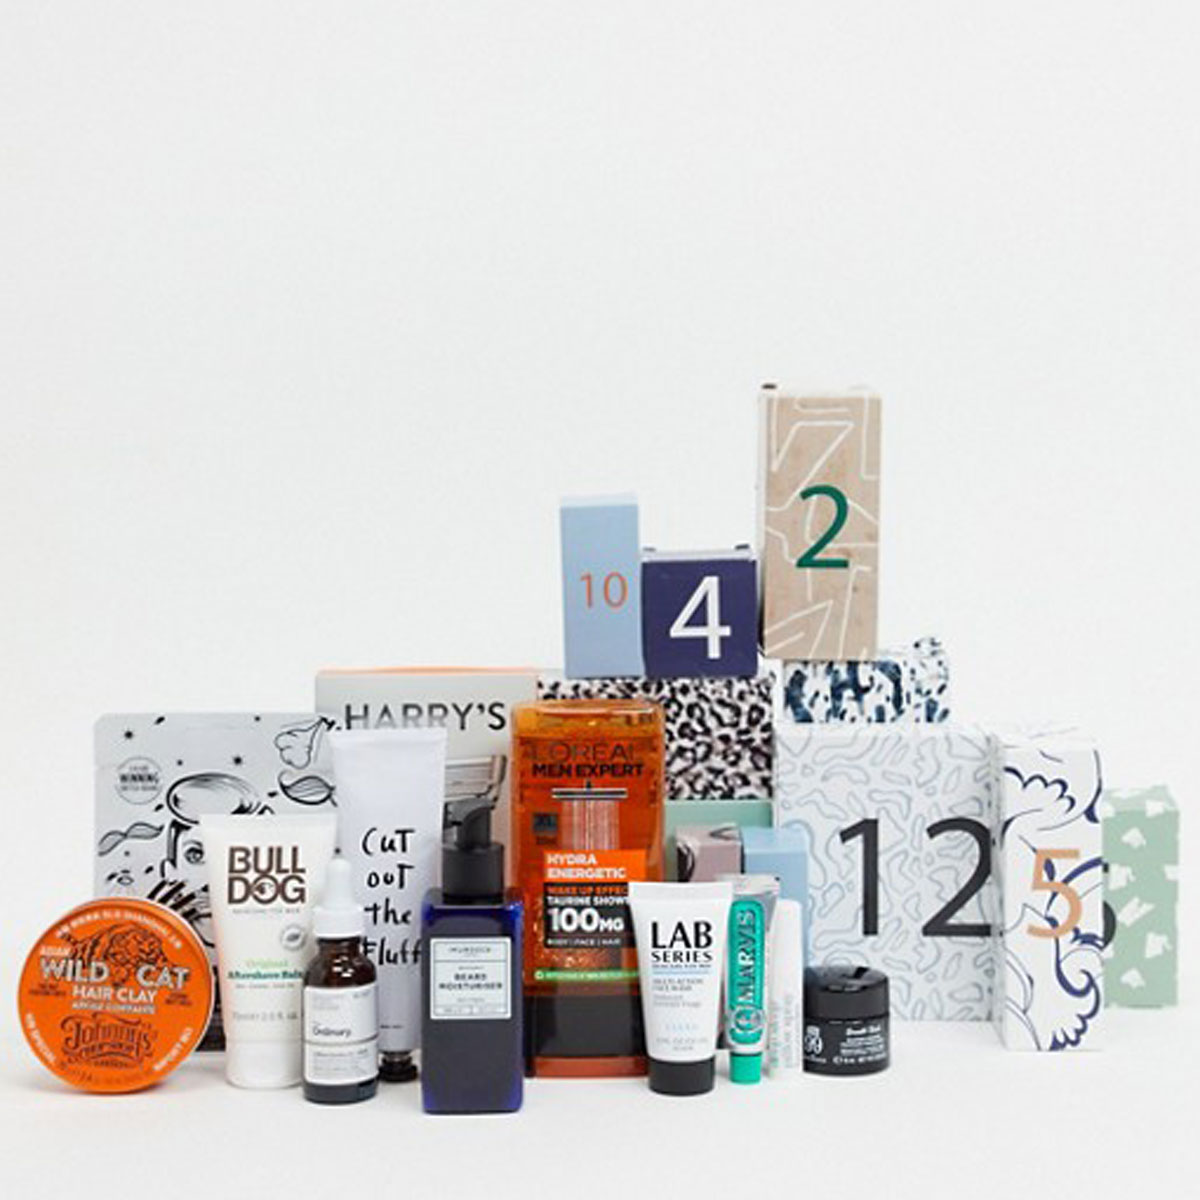 asos-christmas-advent-calendar-grooming-product-review-man-for-himself